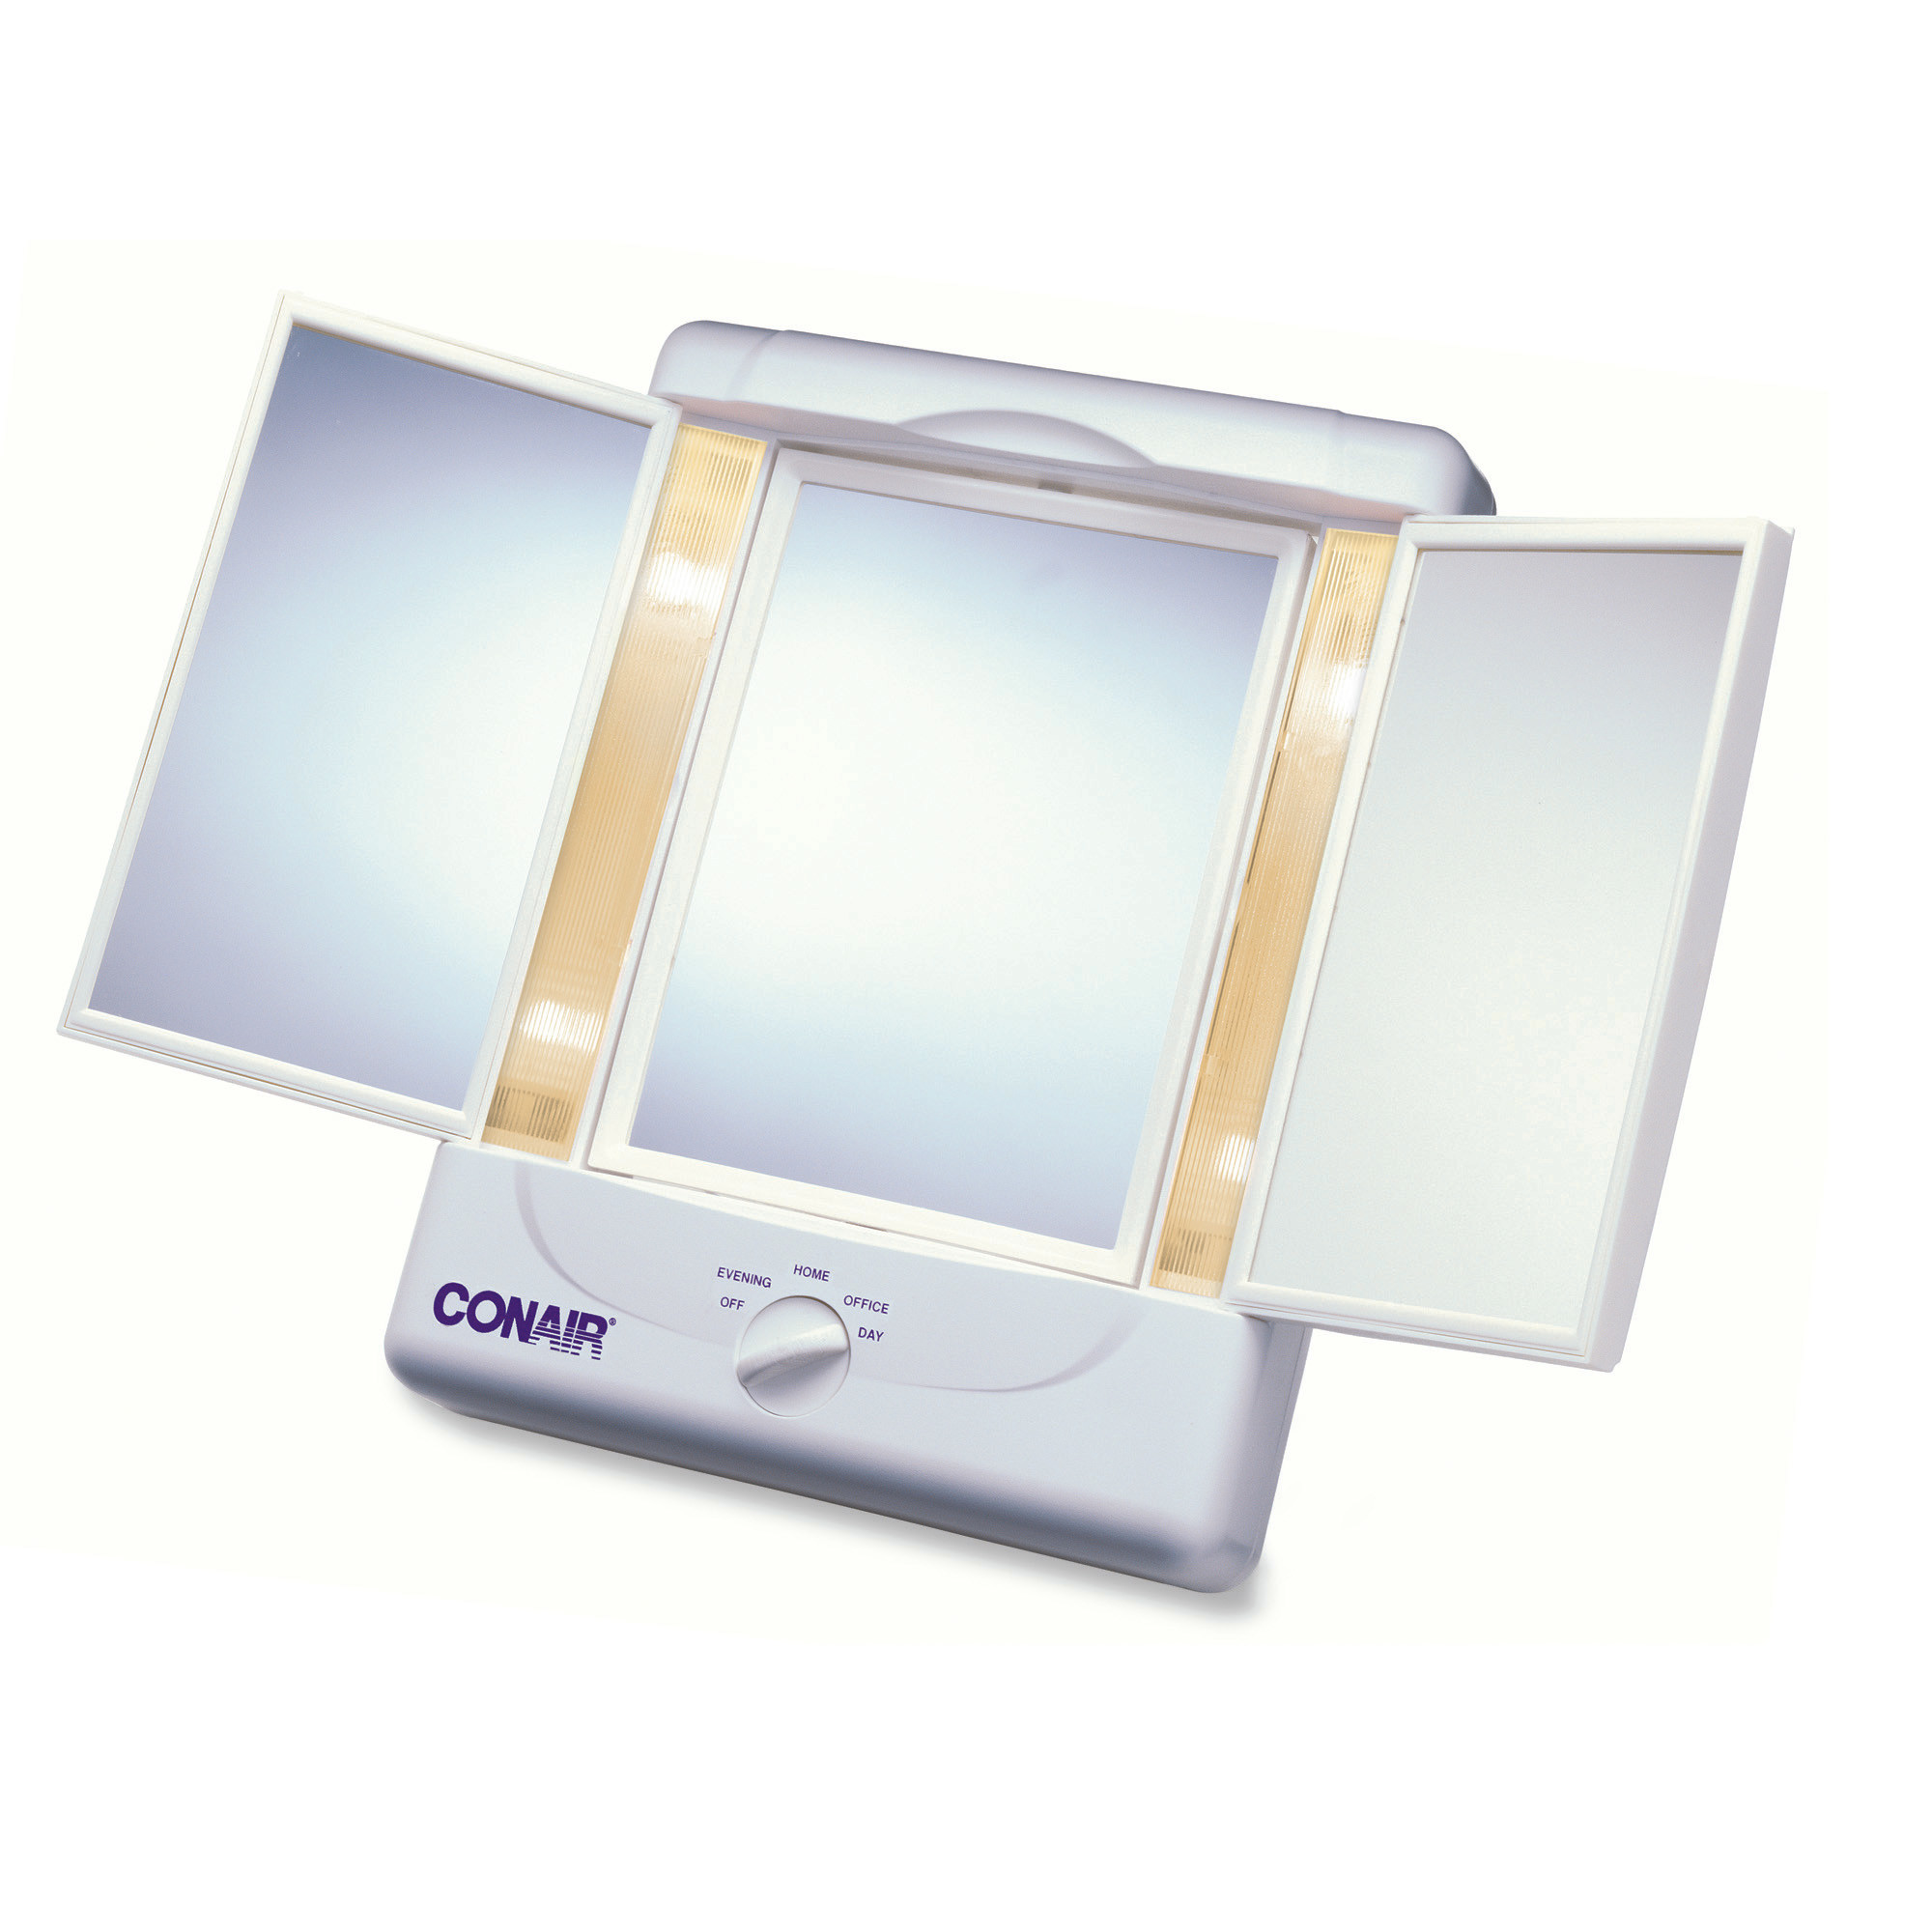 Charming conair makeup mirror for furniture accessories ideas with conair double-sided lighted makeup mirror